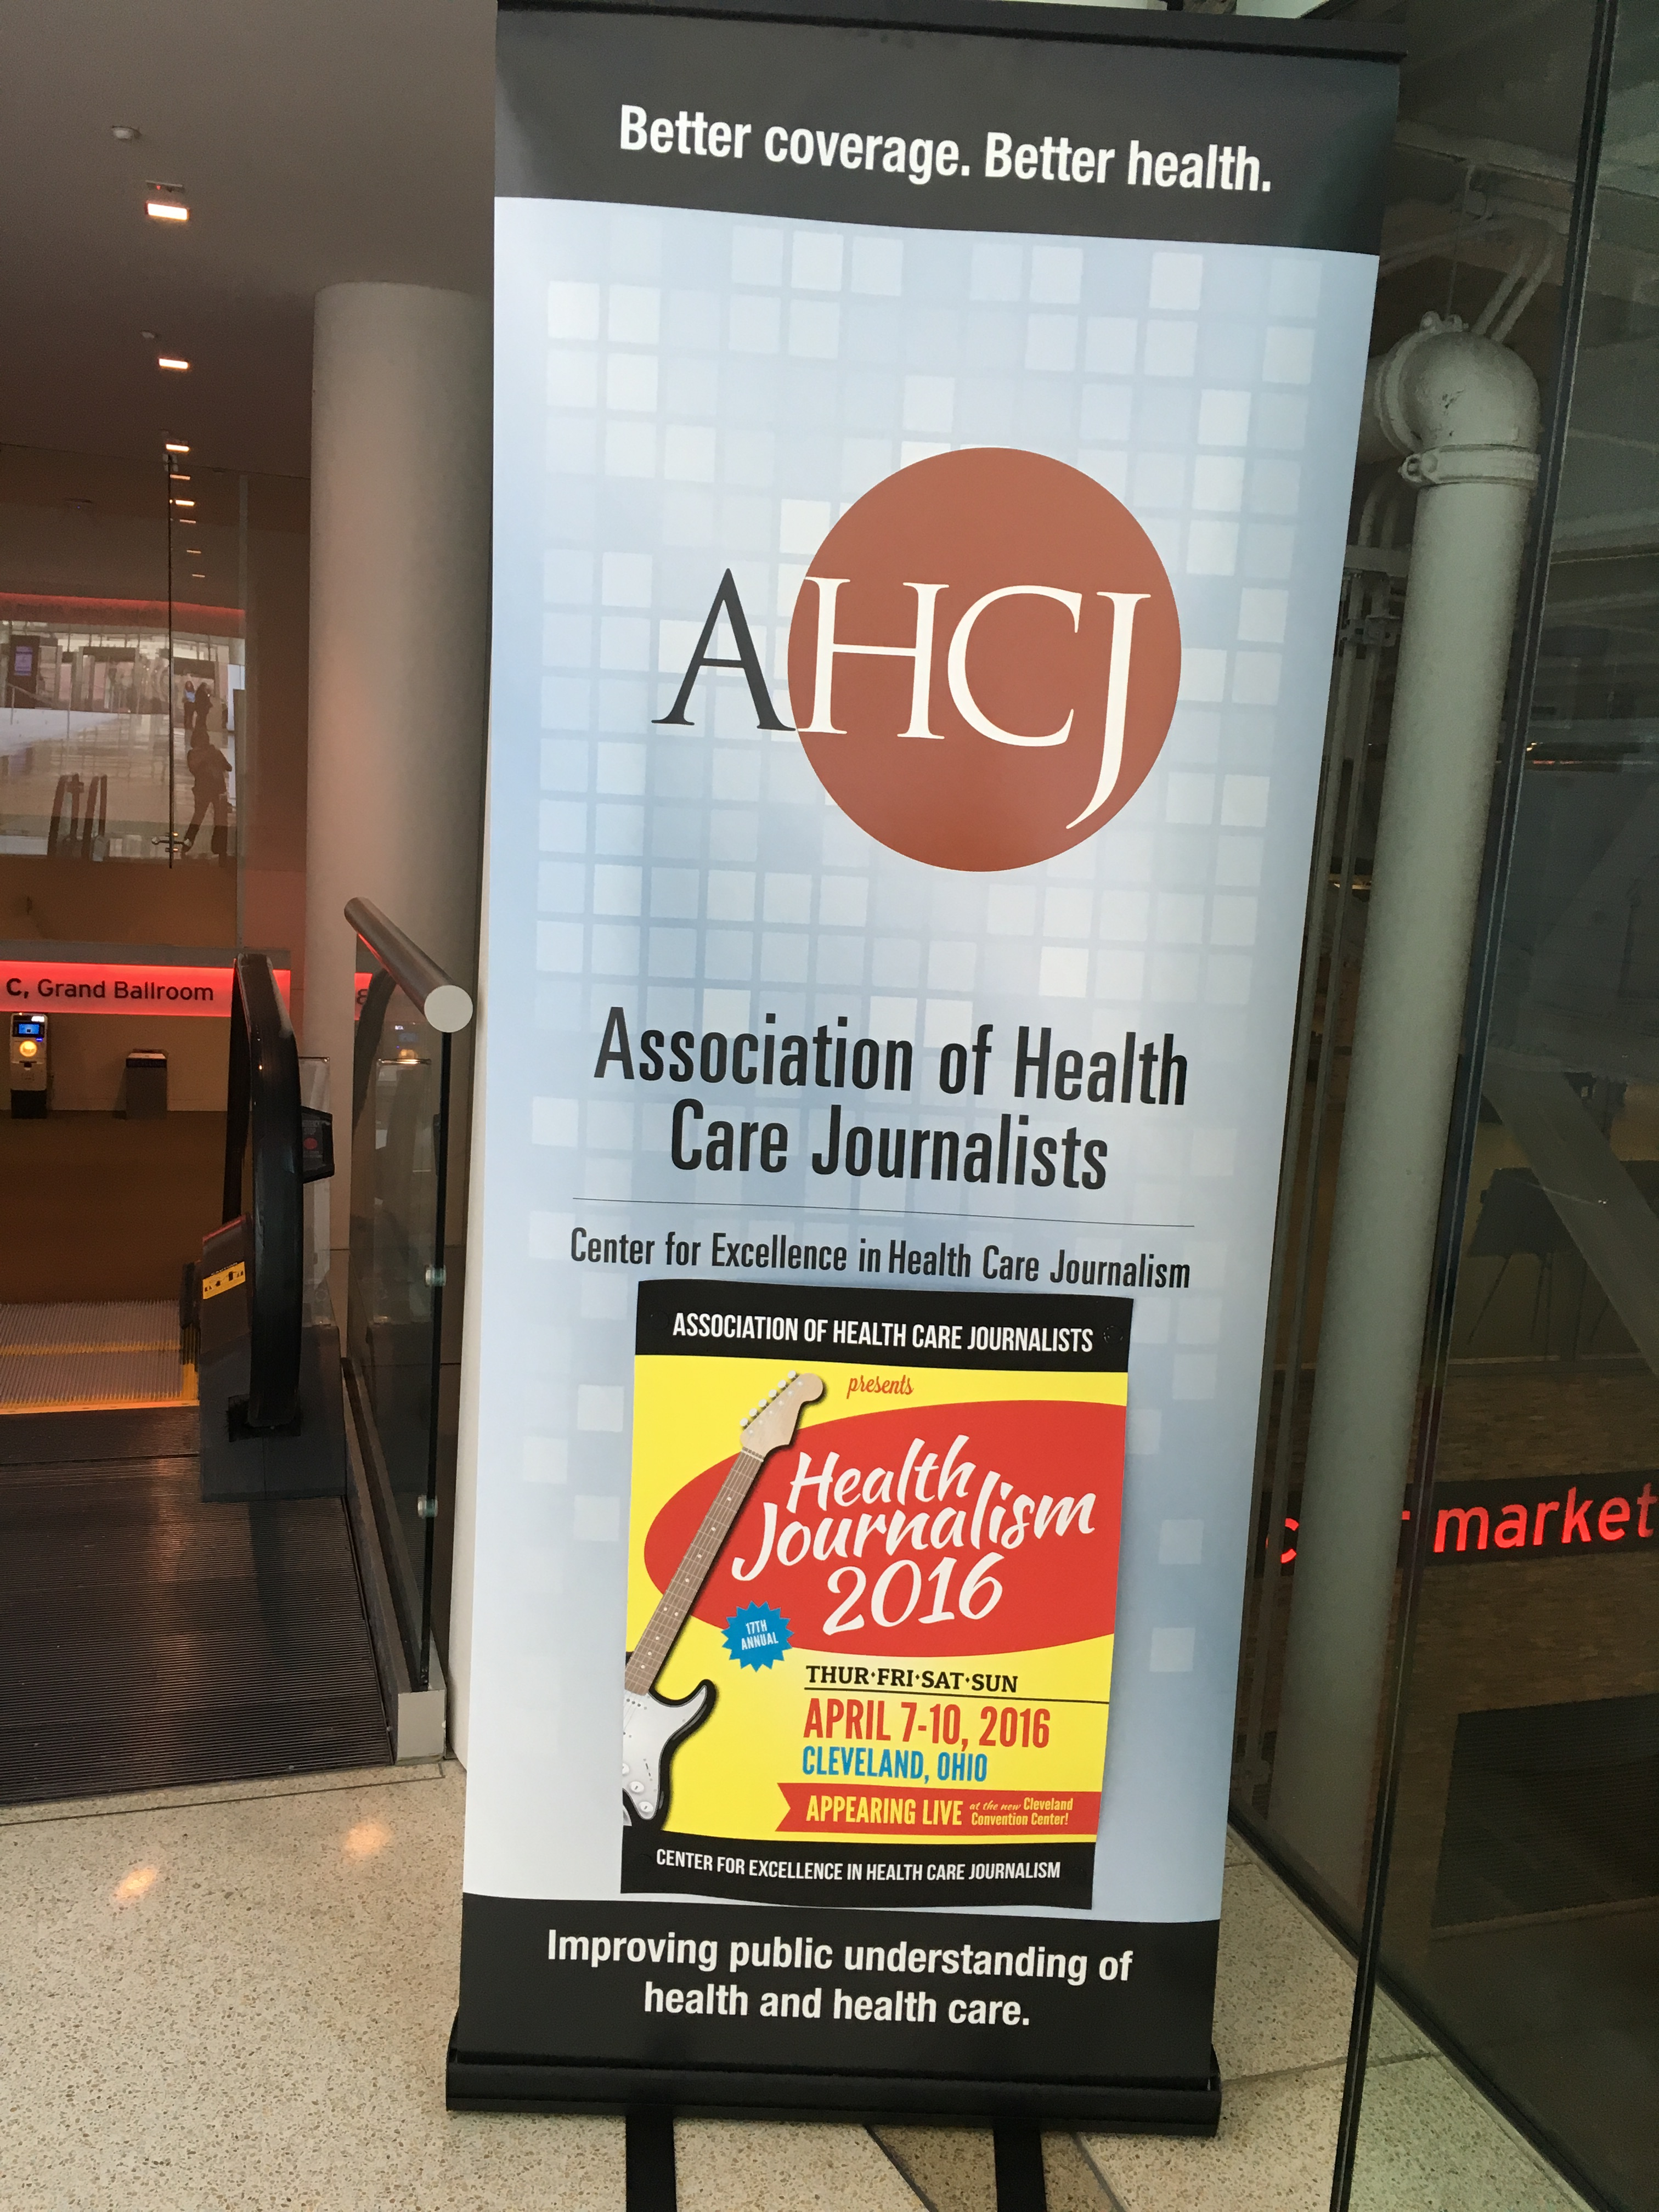 AHCJ 2016 in Cleveland